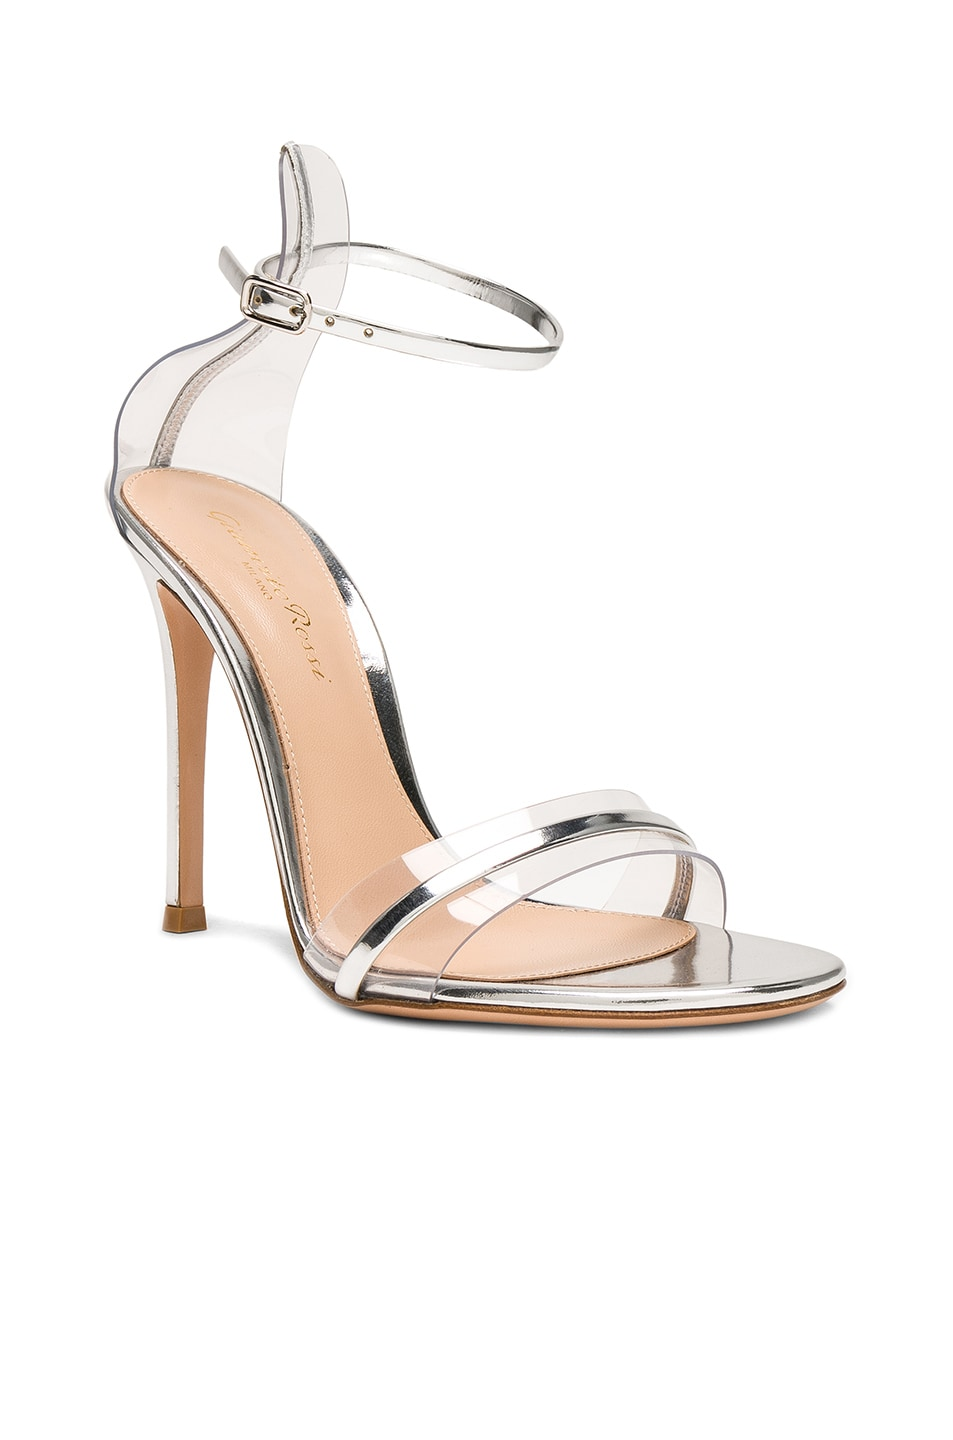 Image 2 of Gianvito Rossi Leather Plexi G-String Heels in Metal Silver & Transparent